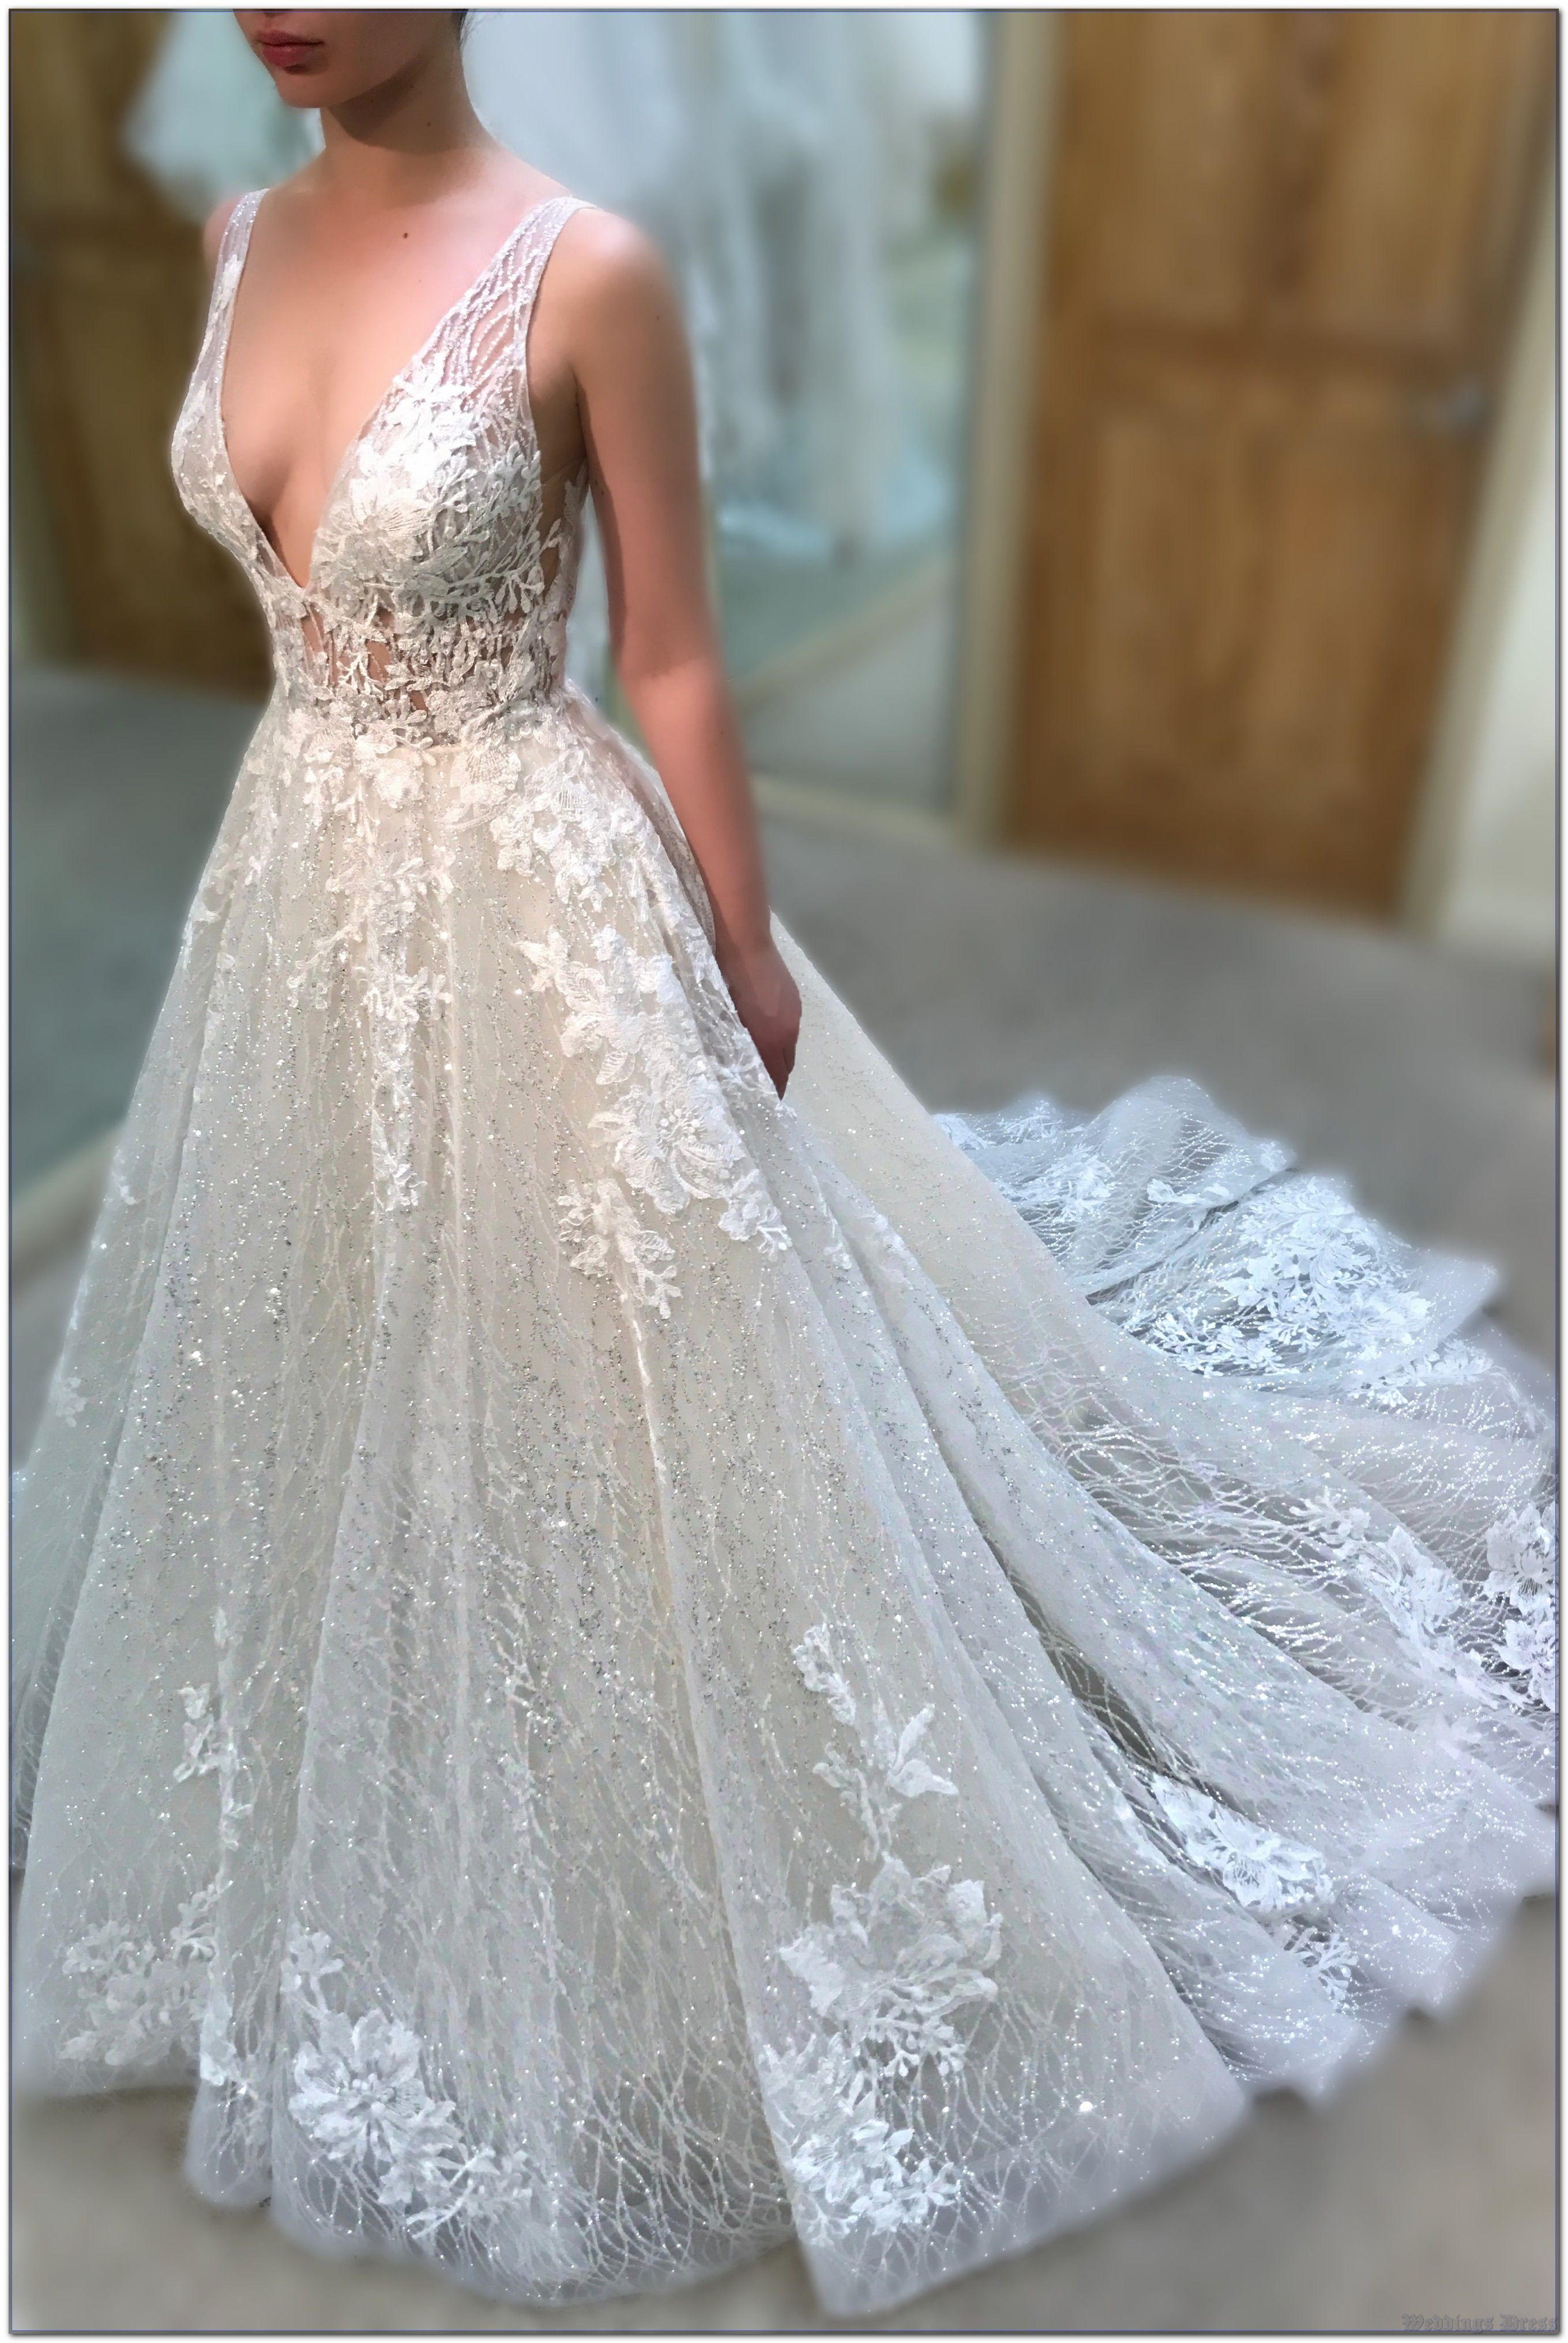 What Is Weddings Dress and How Does It Work?